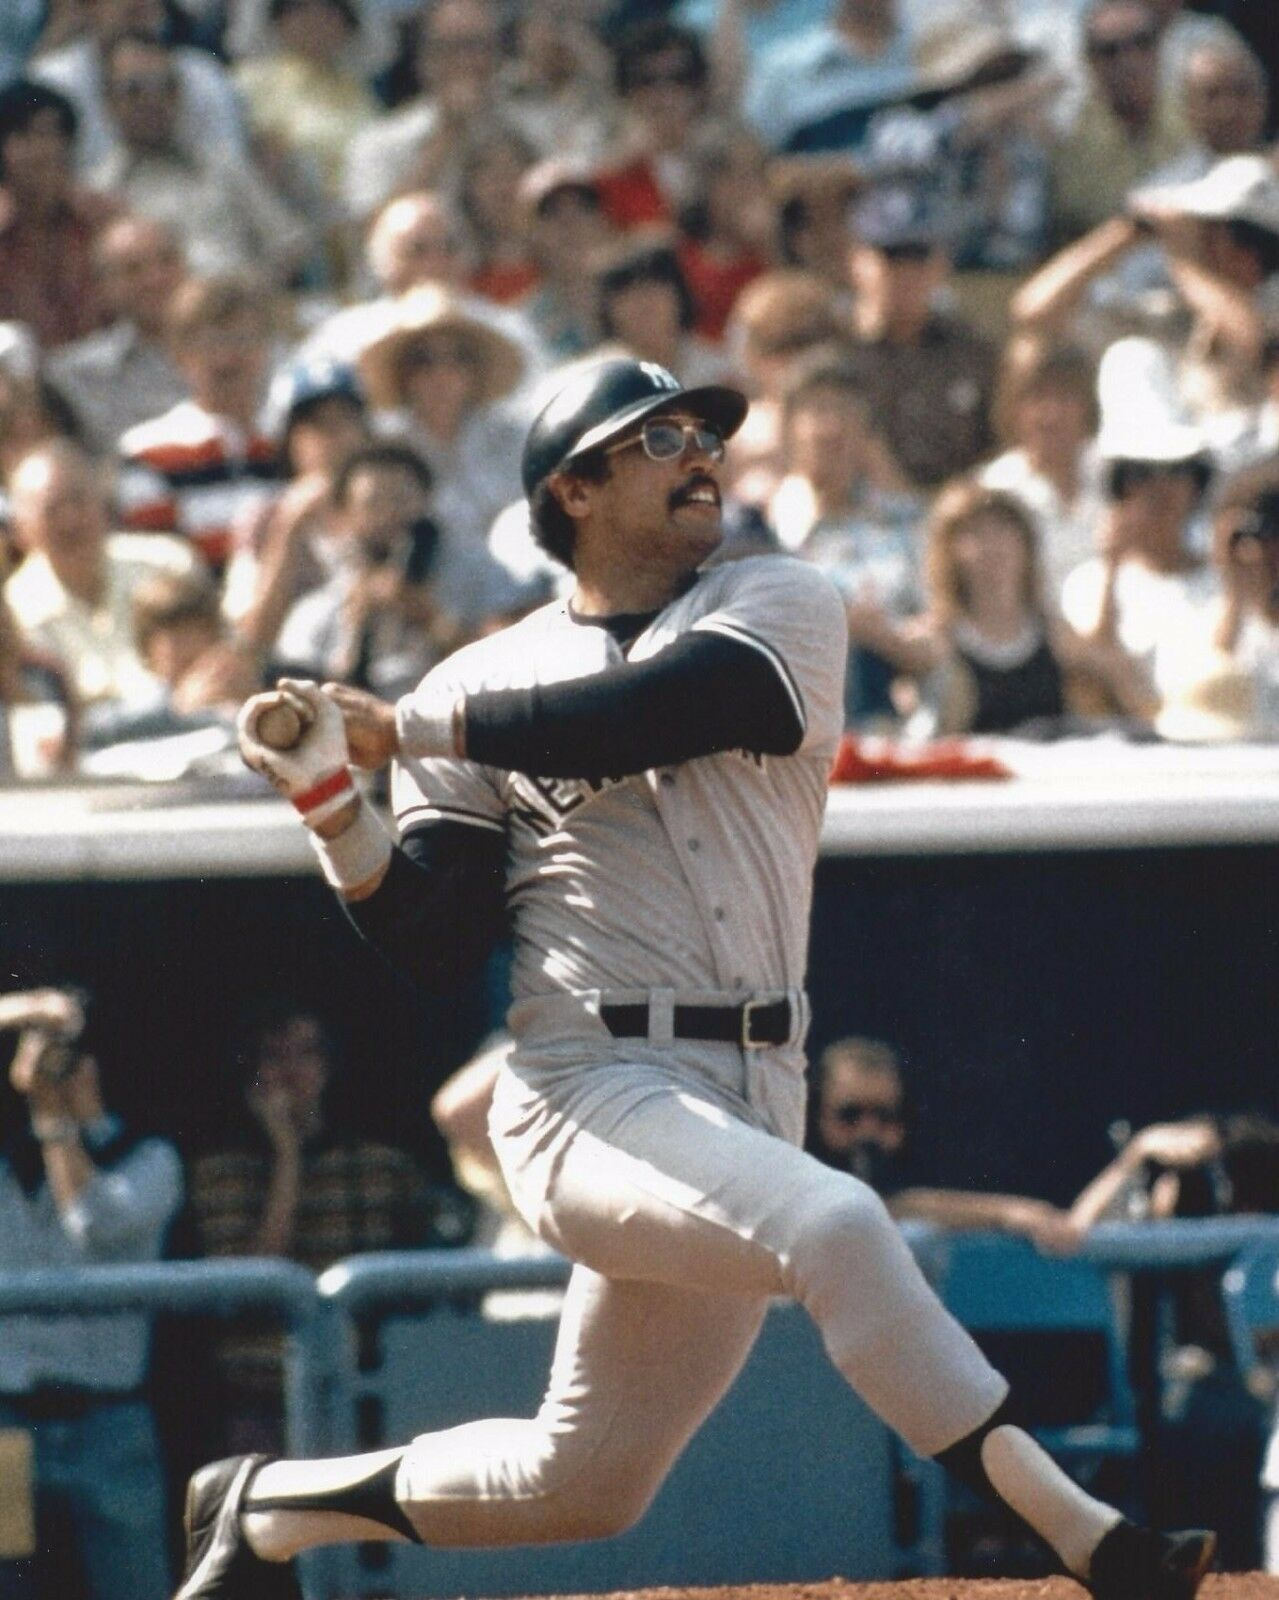 Primary image for REGGIE JACKSON 8X10 PHOTO NEW YORK YANKEES NY BASEBALL PICTURE AT BAT